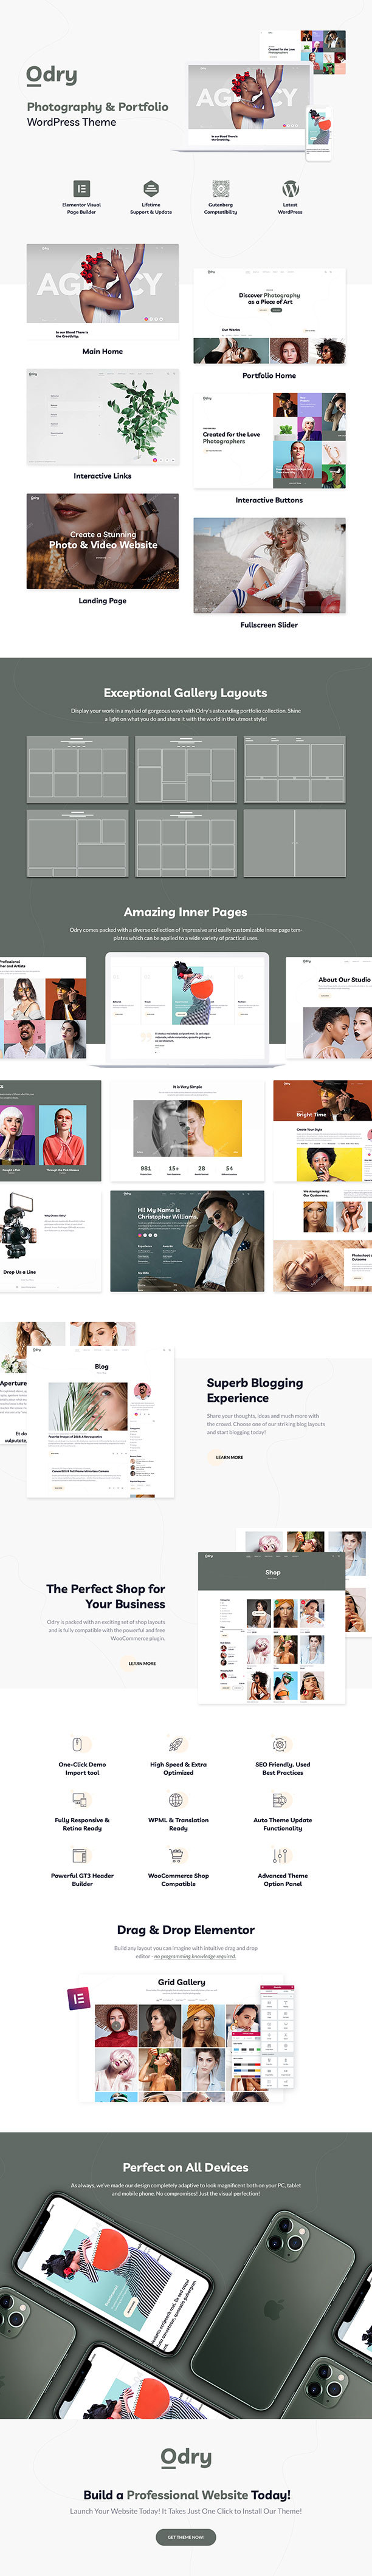 Odry - Photography Portfolio WordPress Theme - 2